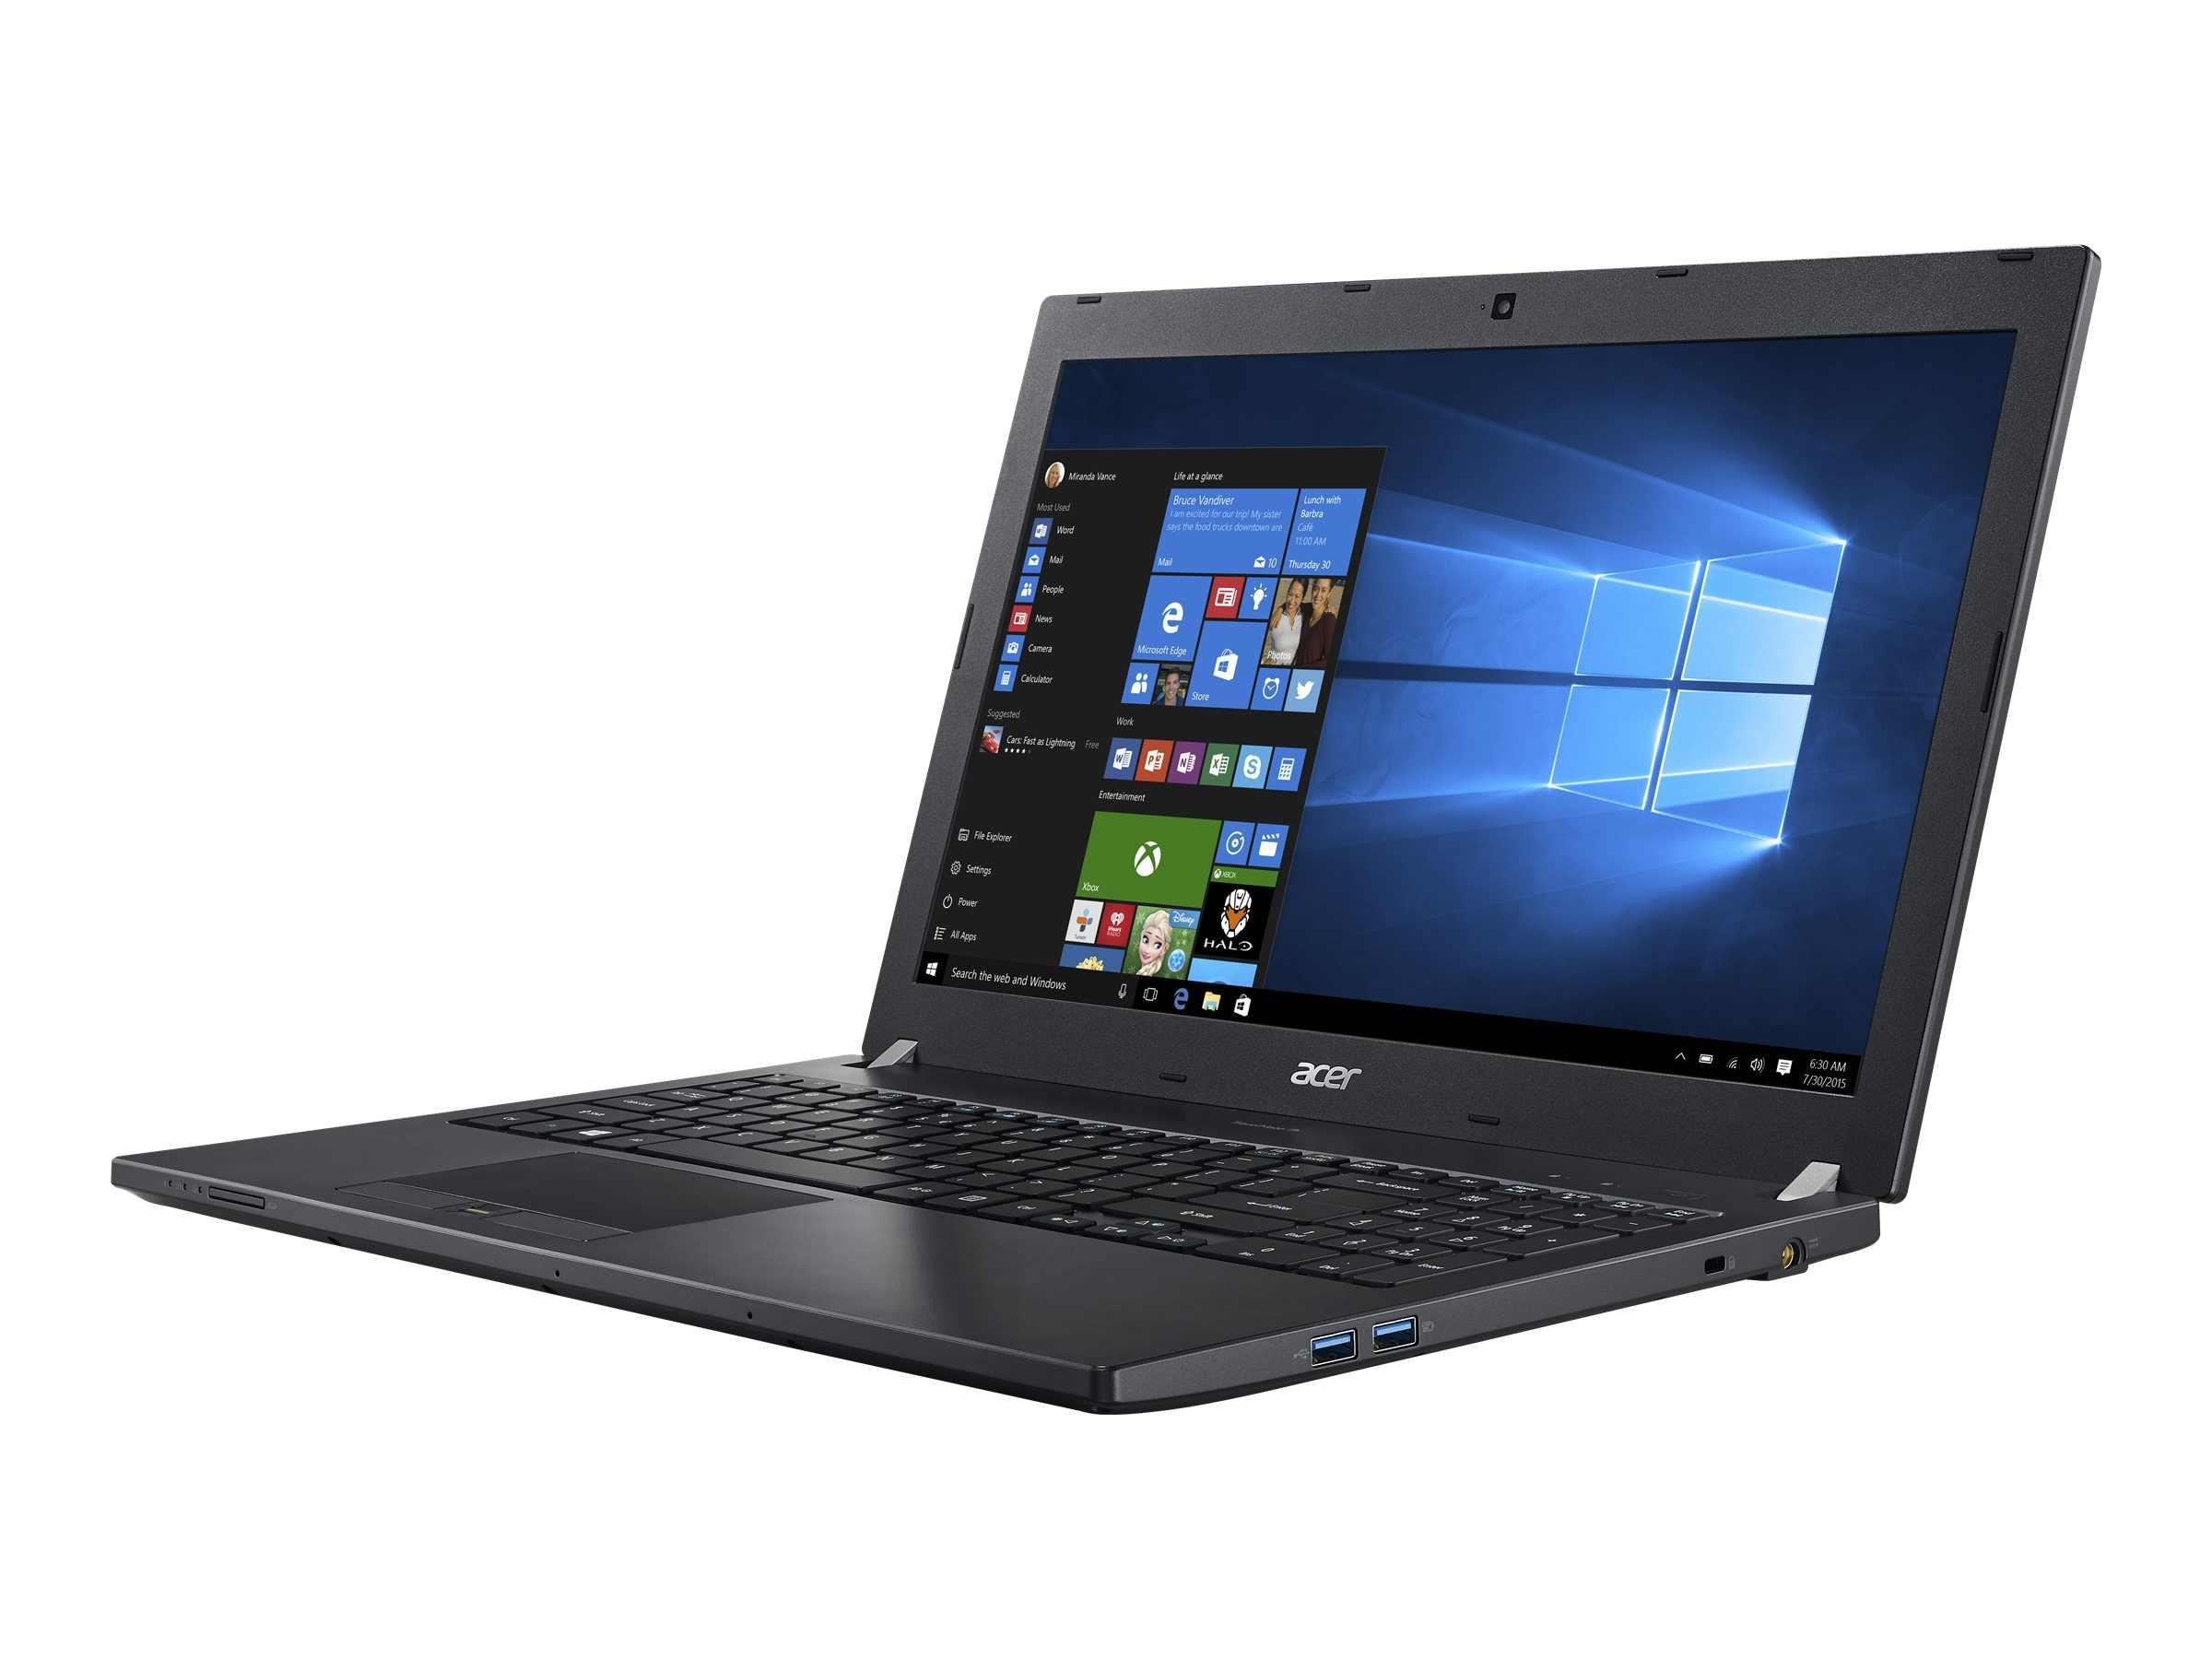 Acer Travelmate P658-M-59SY 2.3GHz Core i5 15.6in display, NX.VCVAA.002, 31999700, Notebooks